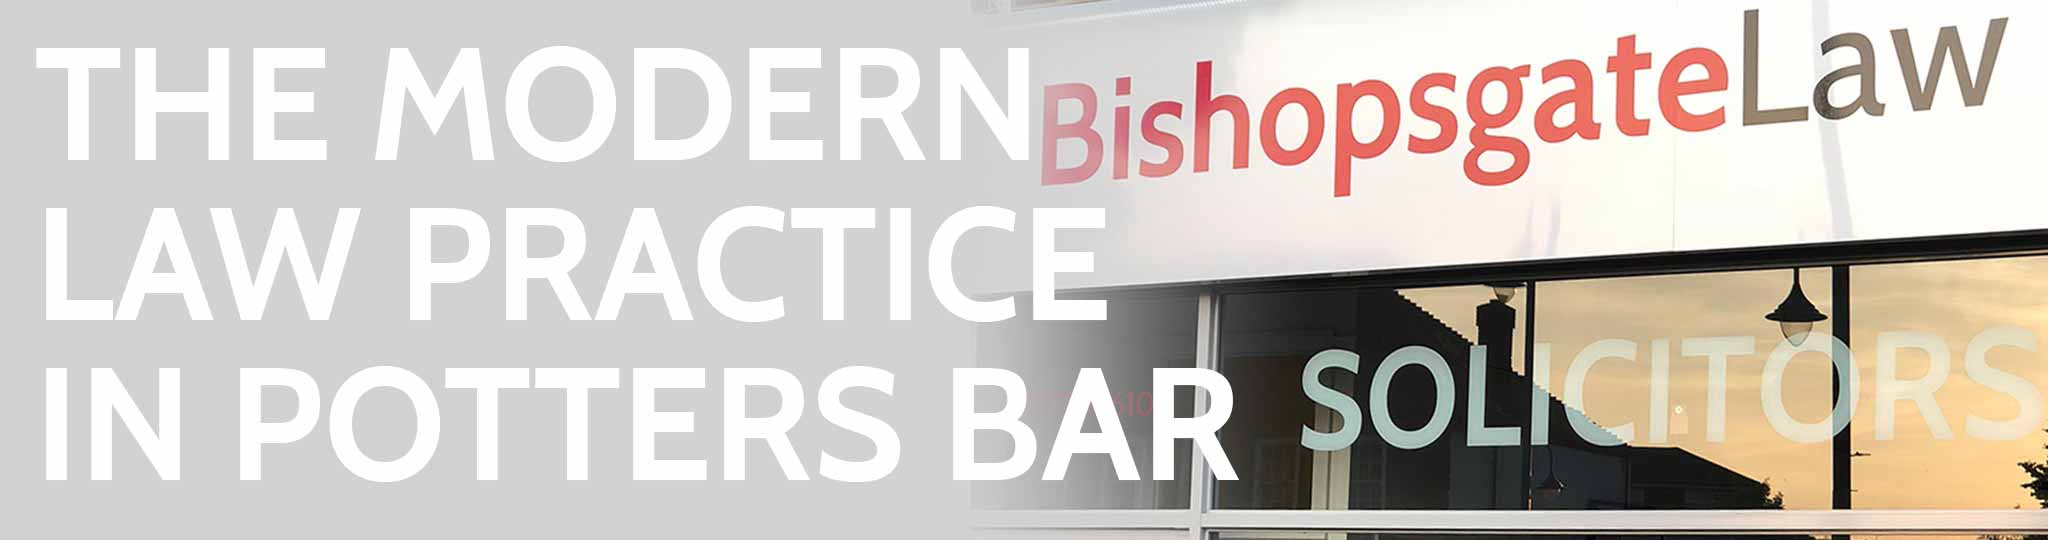 Solicitors in Potters Bar, Hertfordshire - Bishopsgate Law